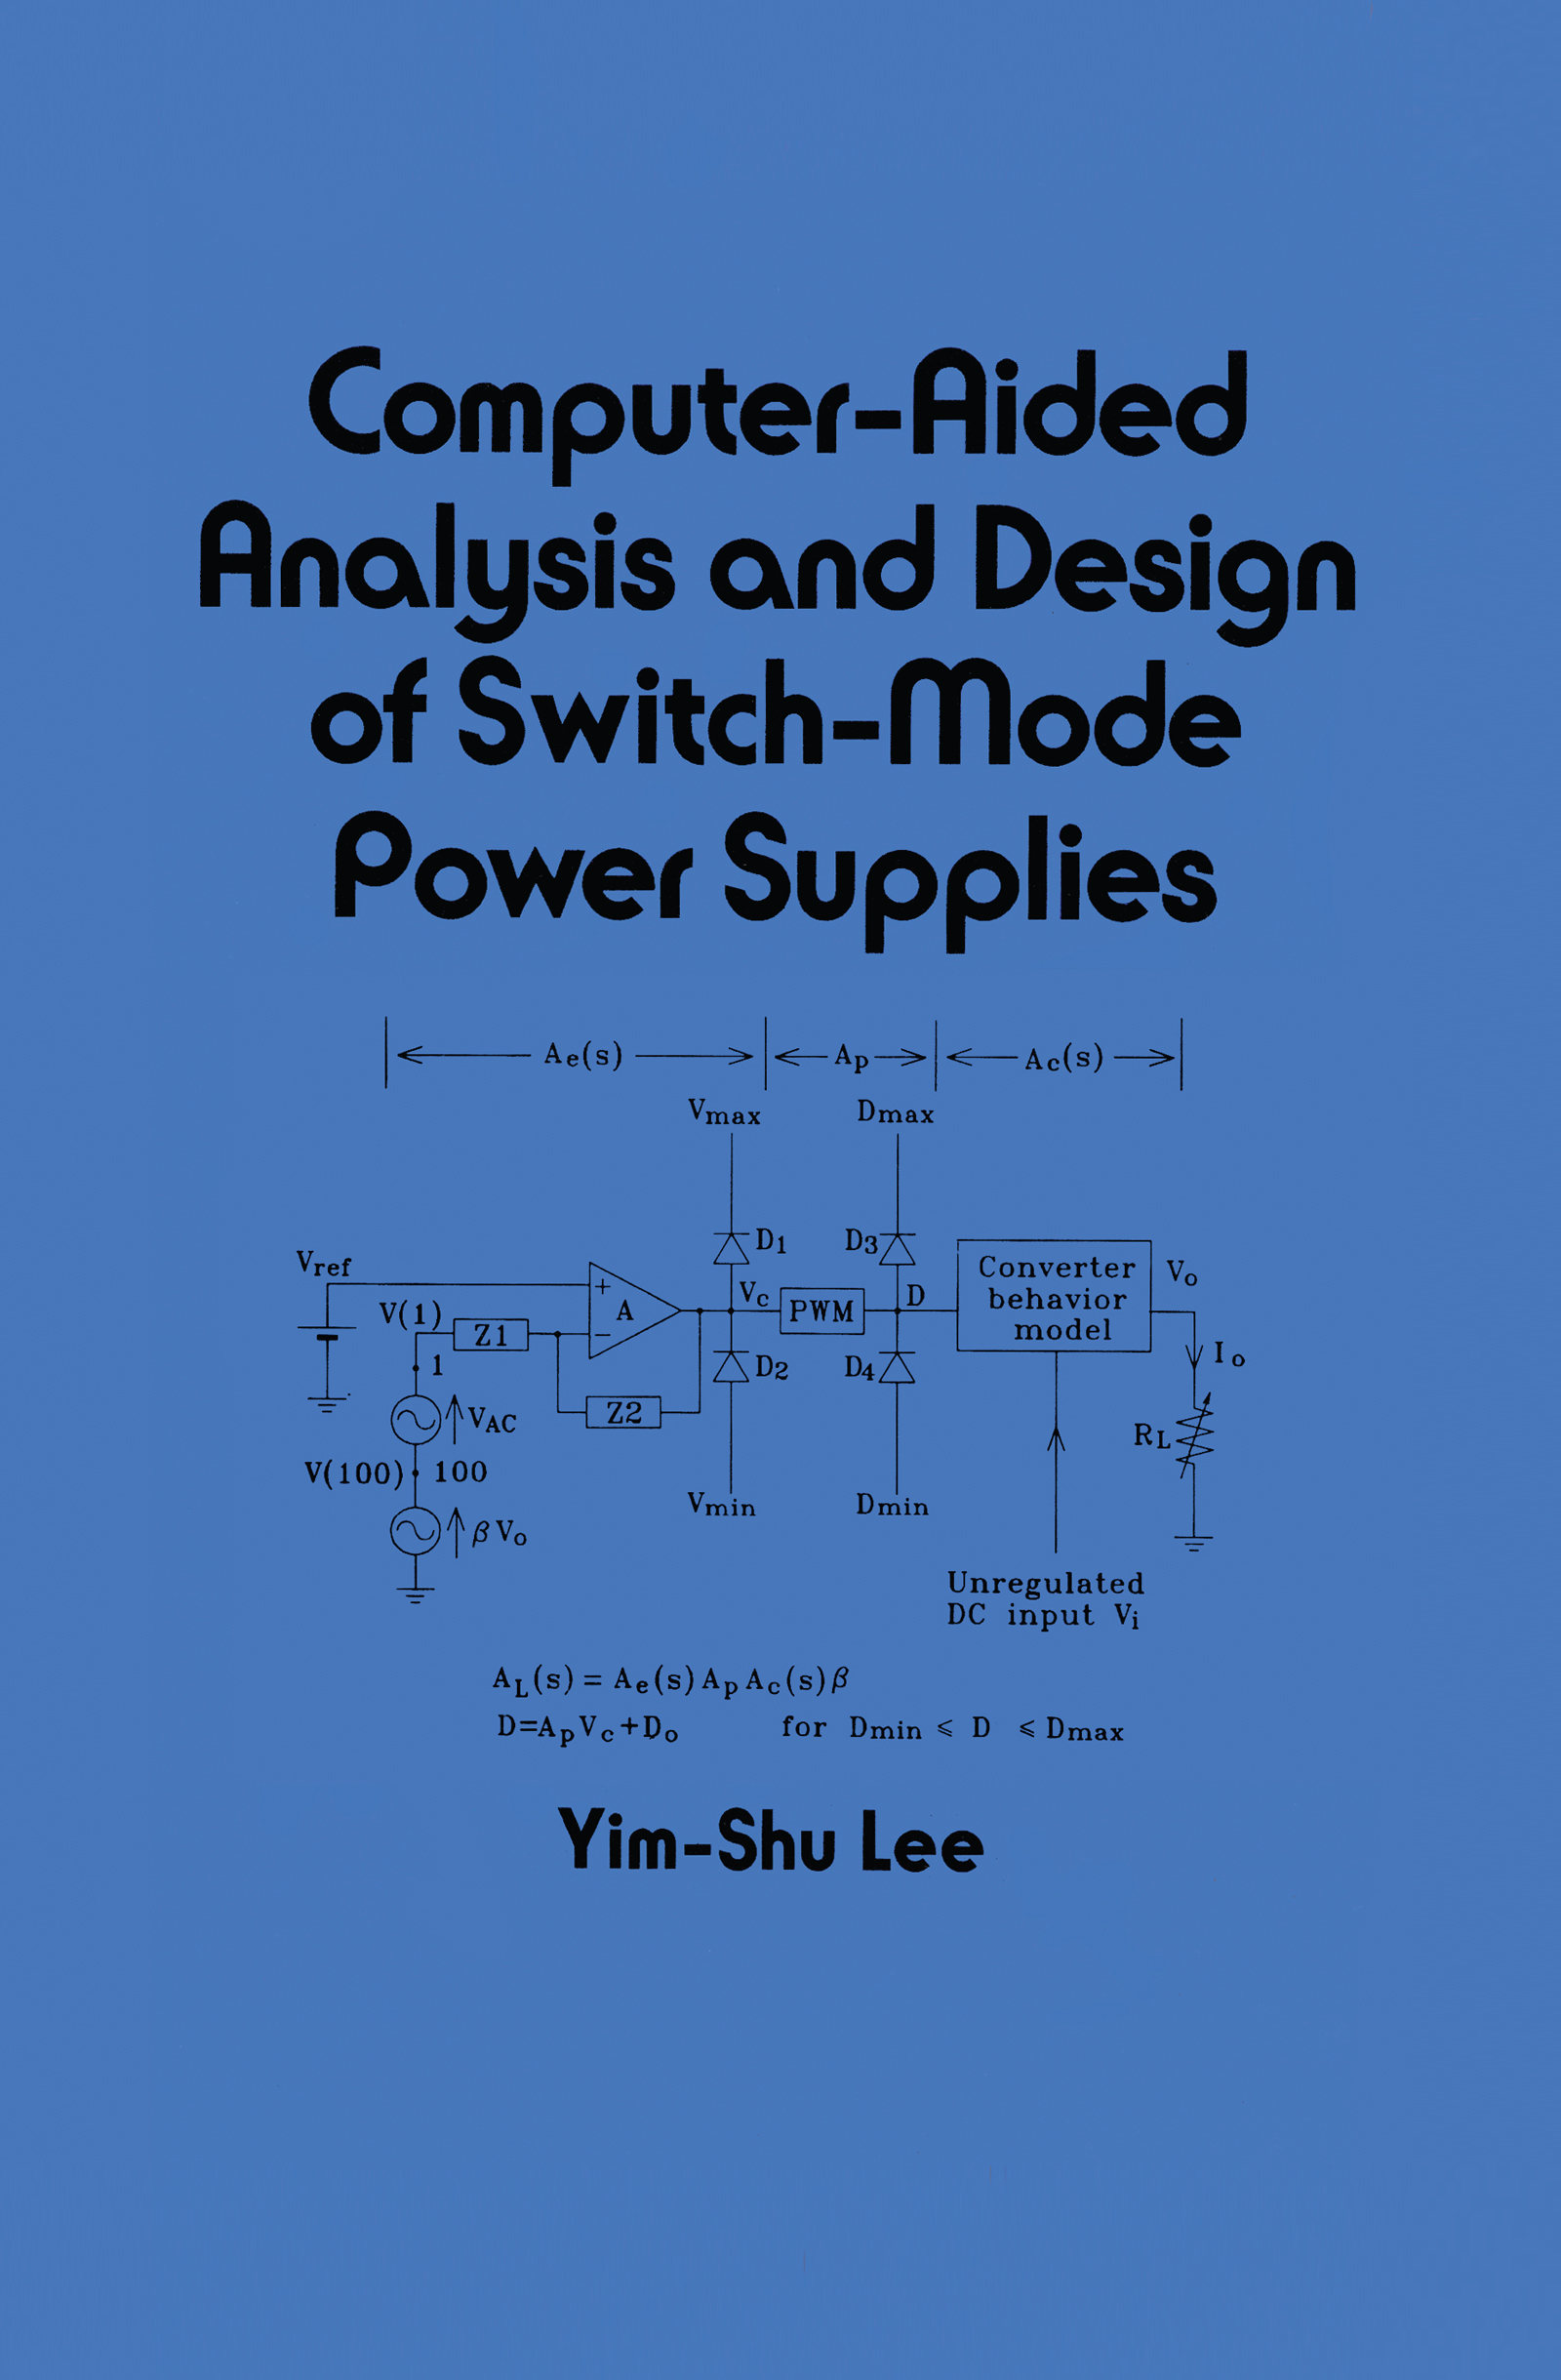 Computer-Aided Analysis and Design of Switch-Mode Power Supplies